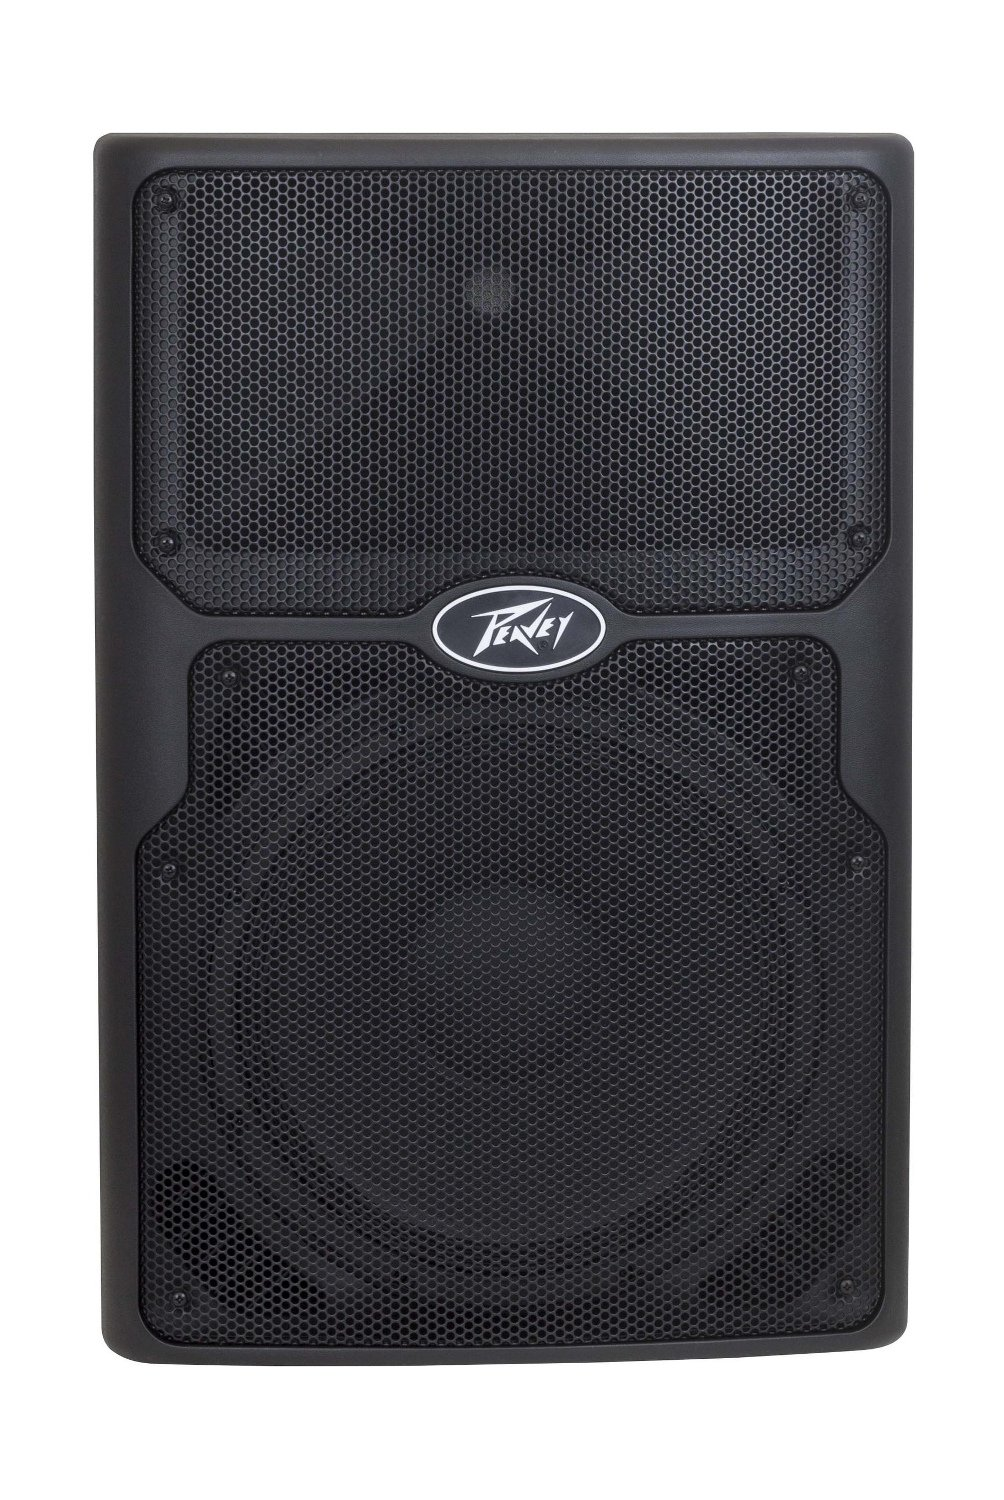 "2-Way 12"" Powered Speaker with DSP"